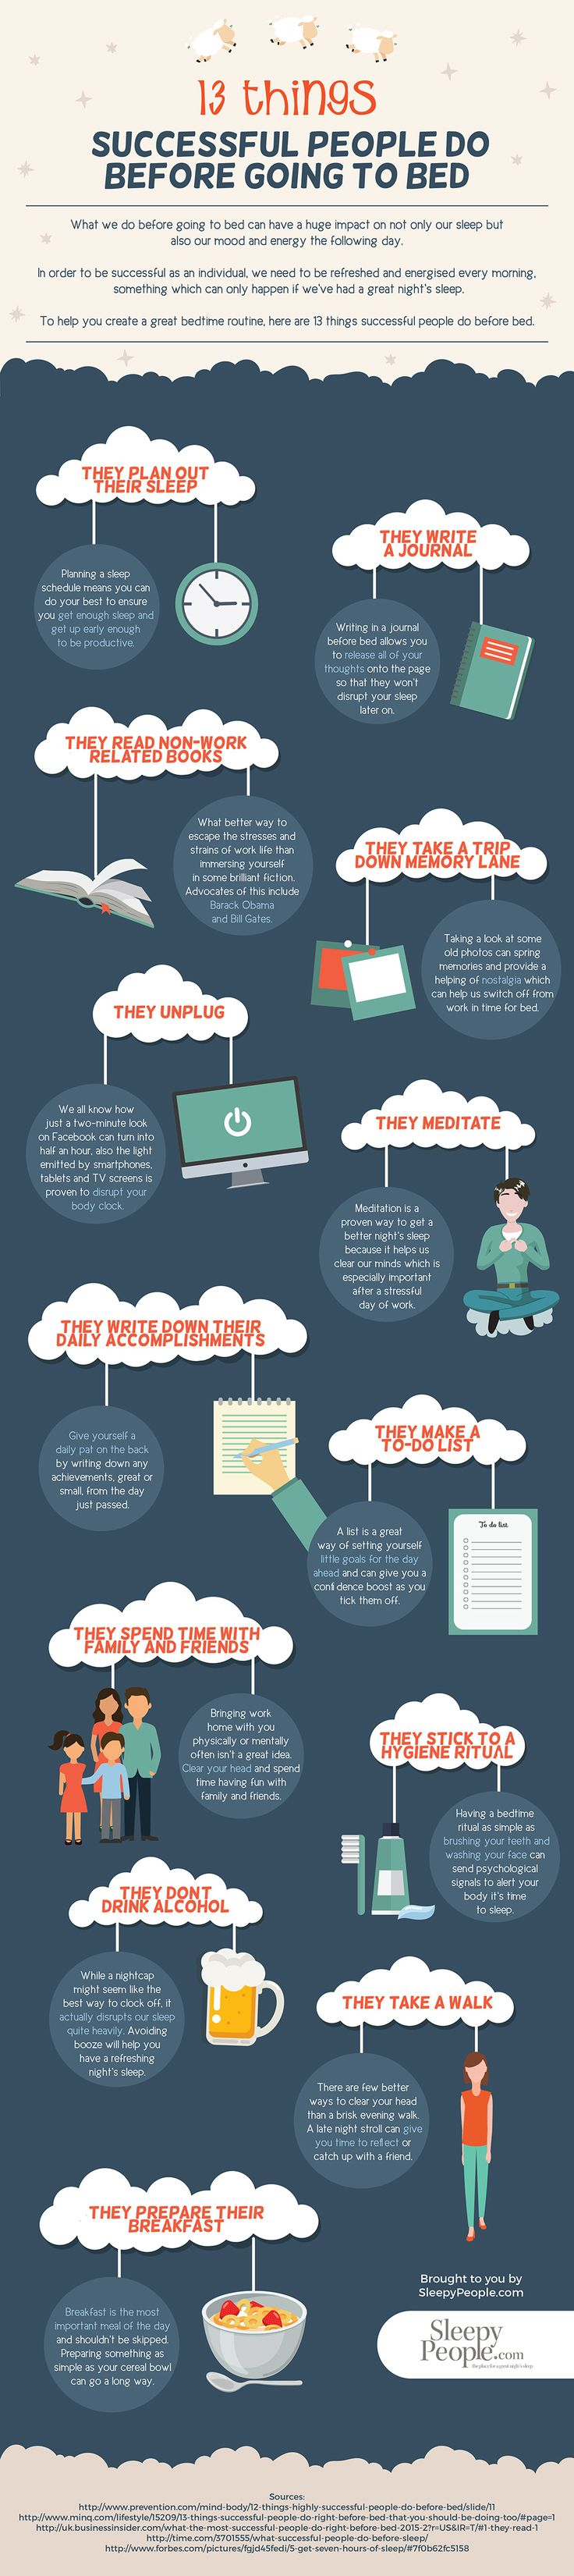 13 Things Successful Entrepreneurs Do Before Going To Bed #Infographic #Entrepreneur